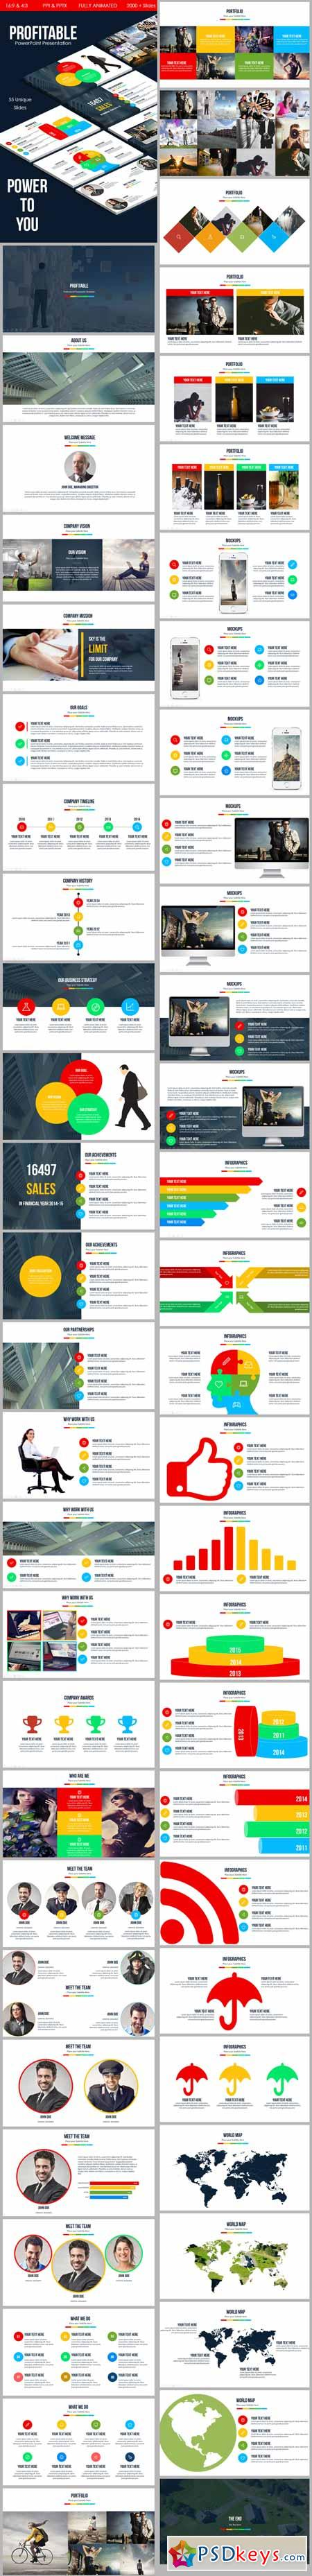 Profitable multipurpose powerpoint template 12736613 free profitable multipurpose powerpoint template 12736613 toneelgroepblik Gallery